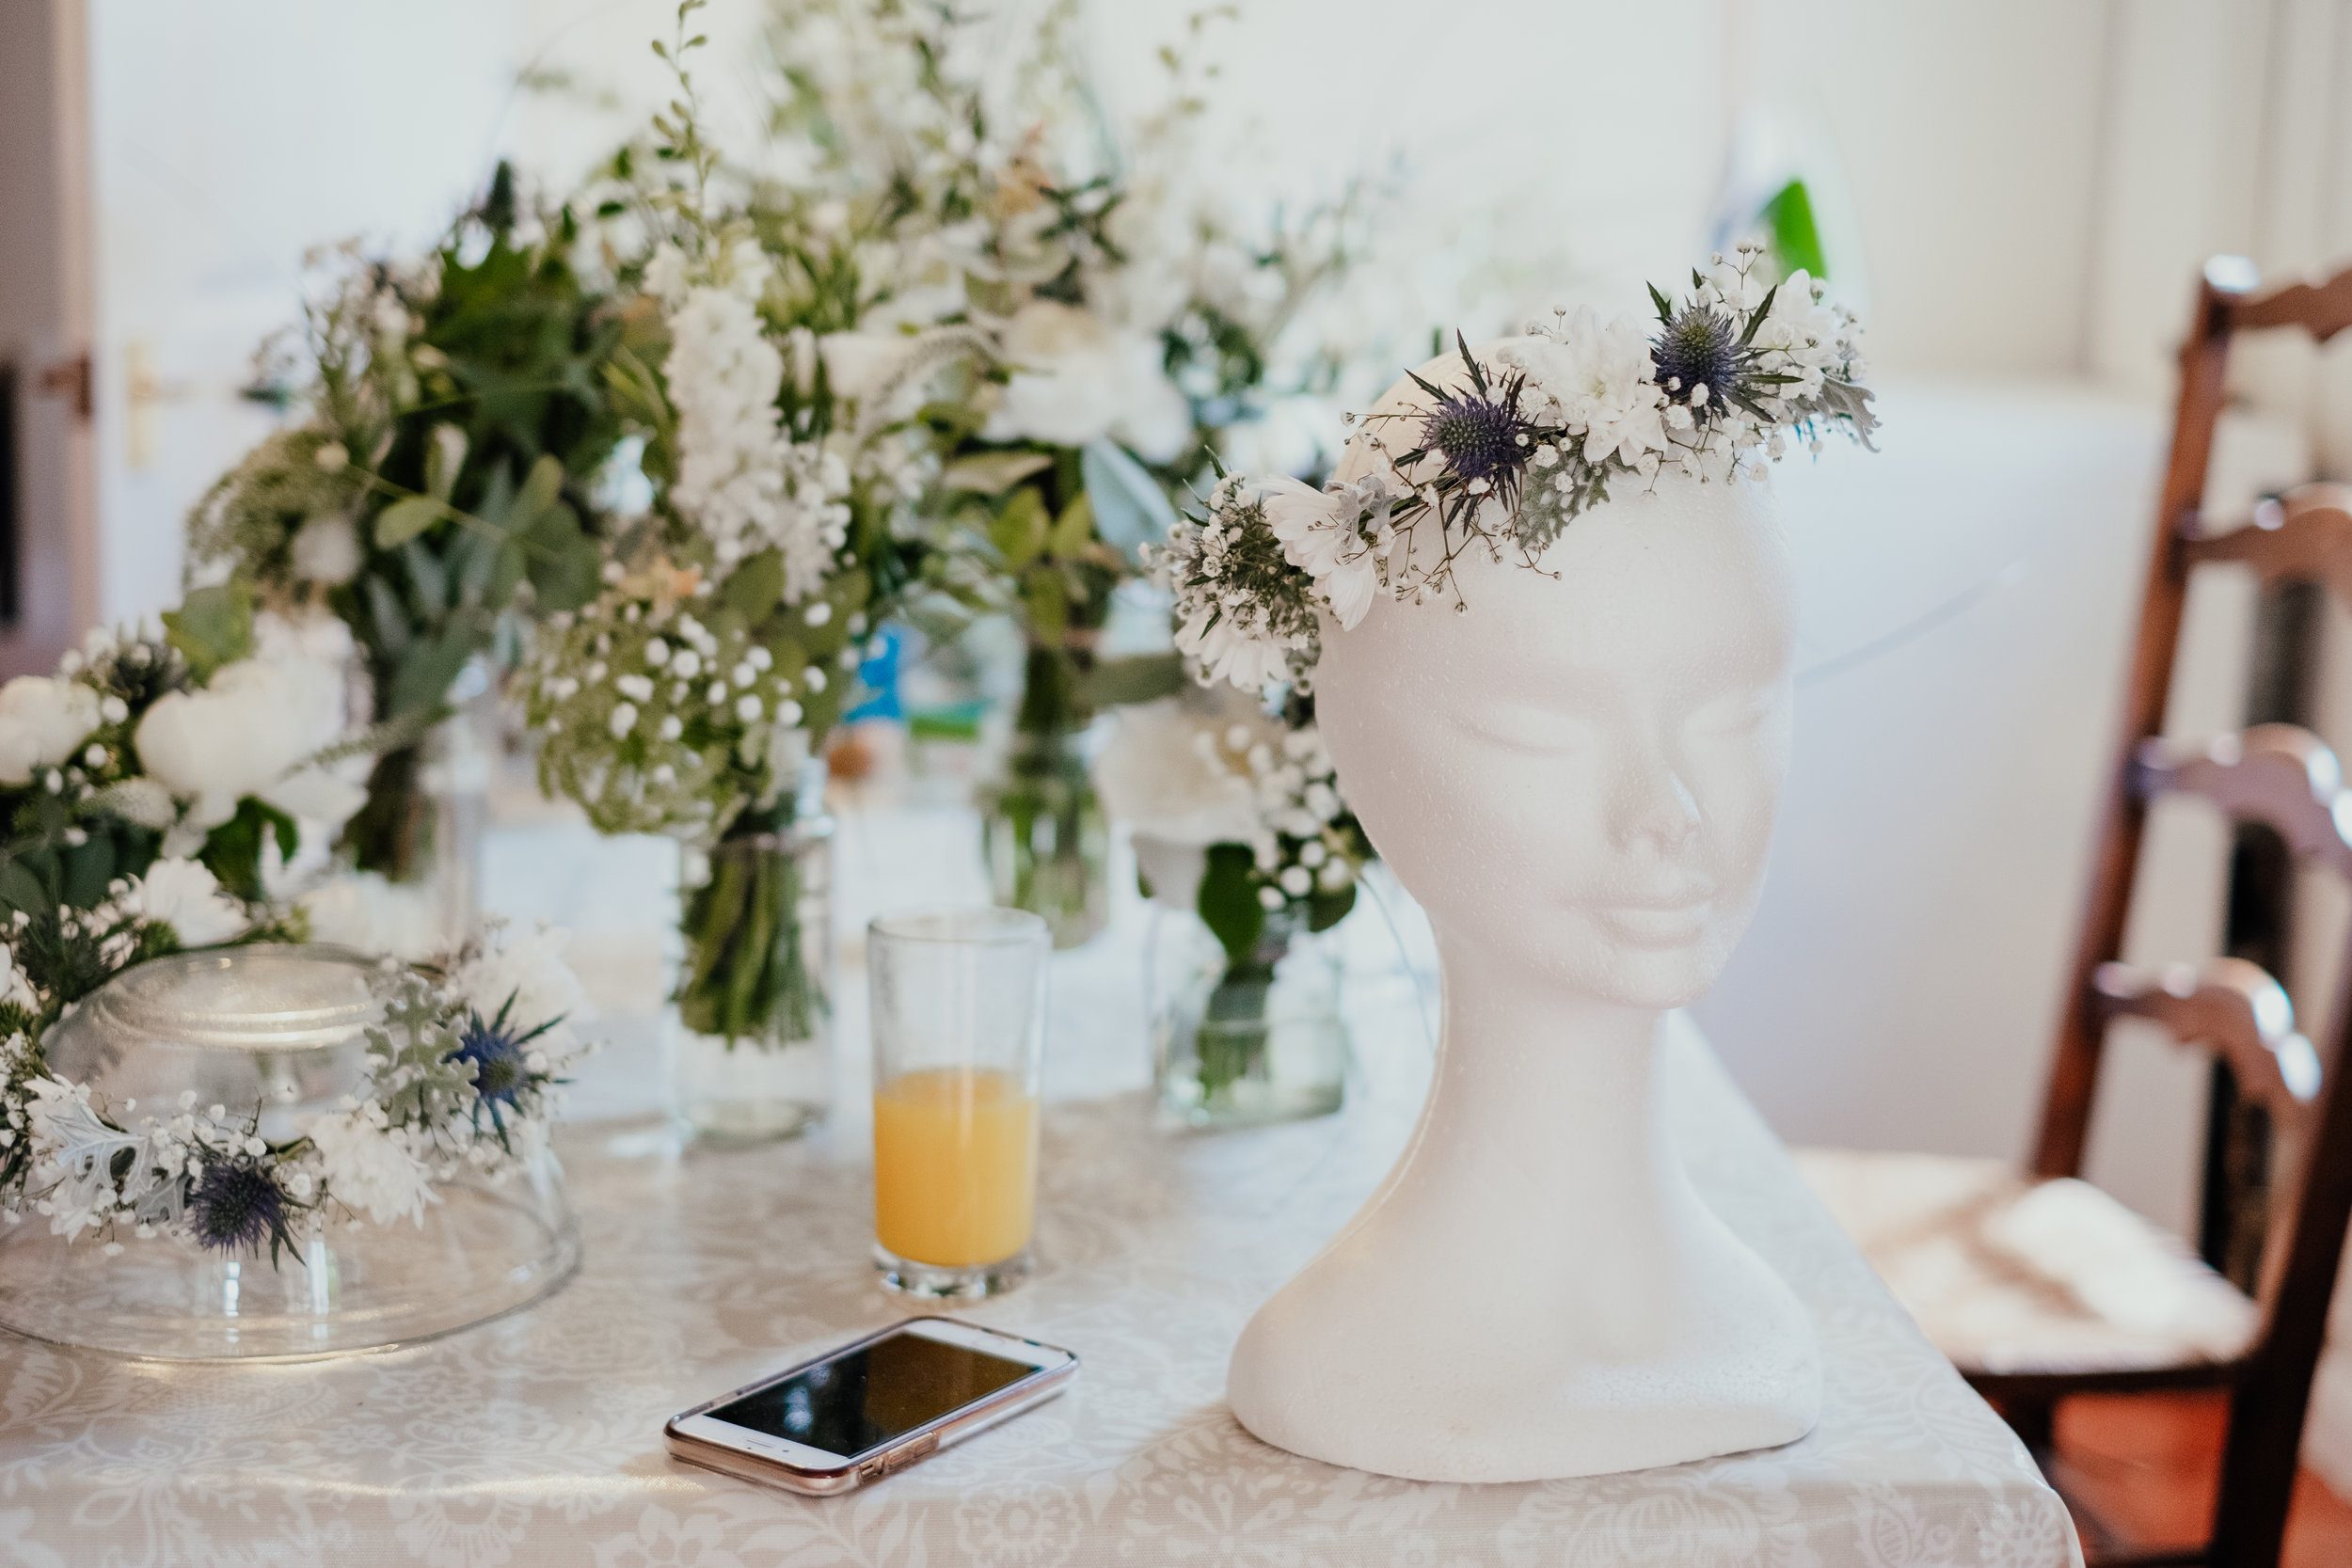 Flower crown and flowers on mannequin head